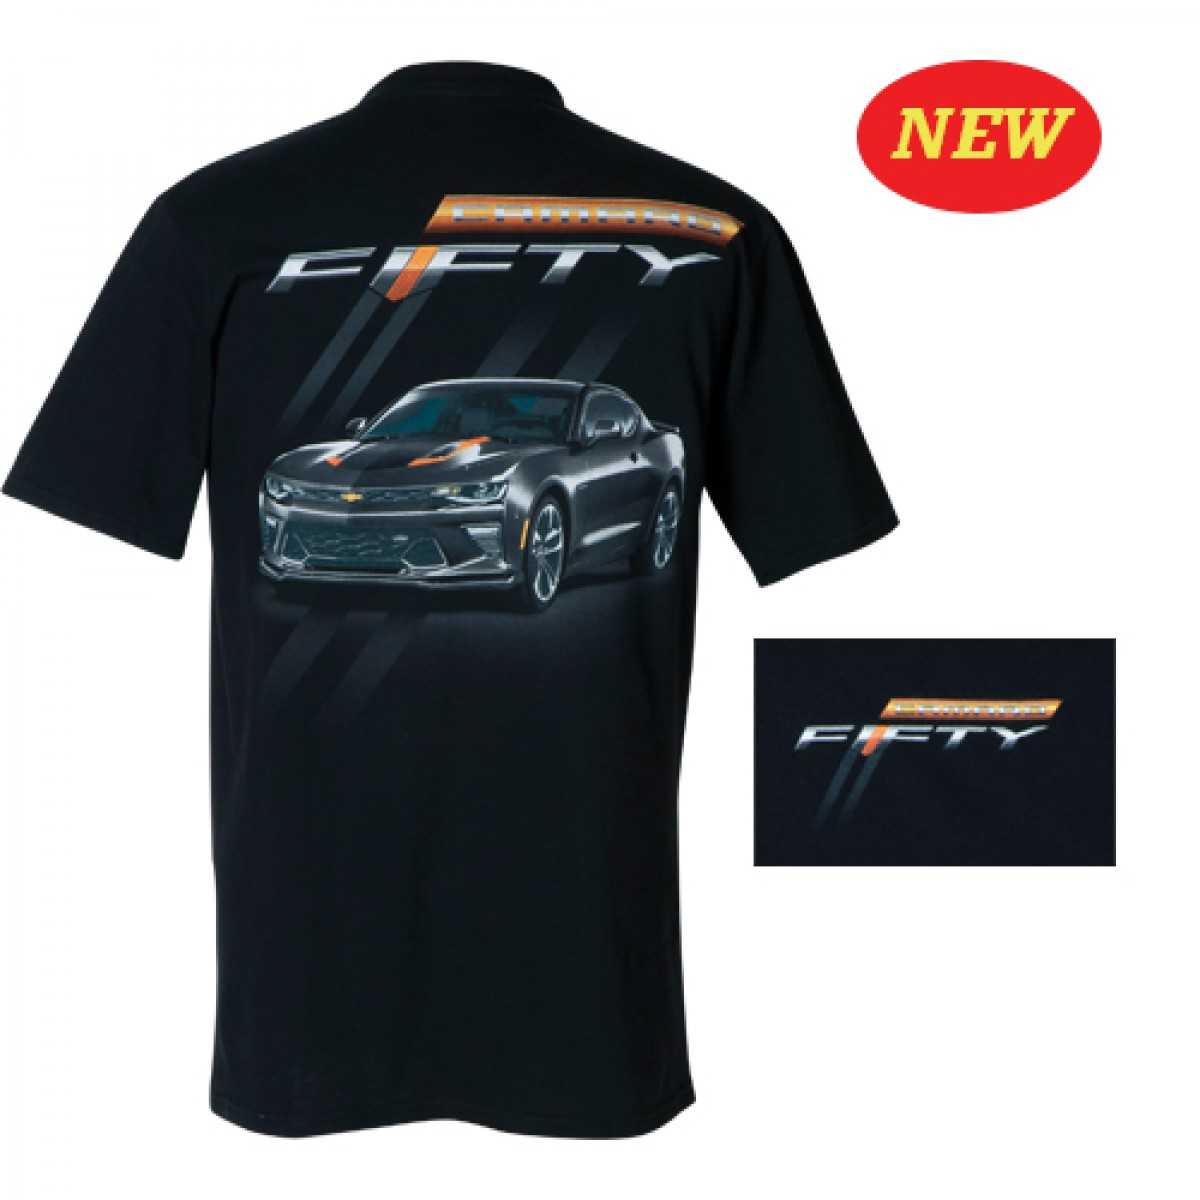 c6649857f HossRods.com | 50th Anniversary Camaro T Shirt | Hot Rod Accessories ...